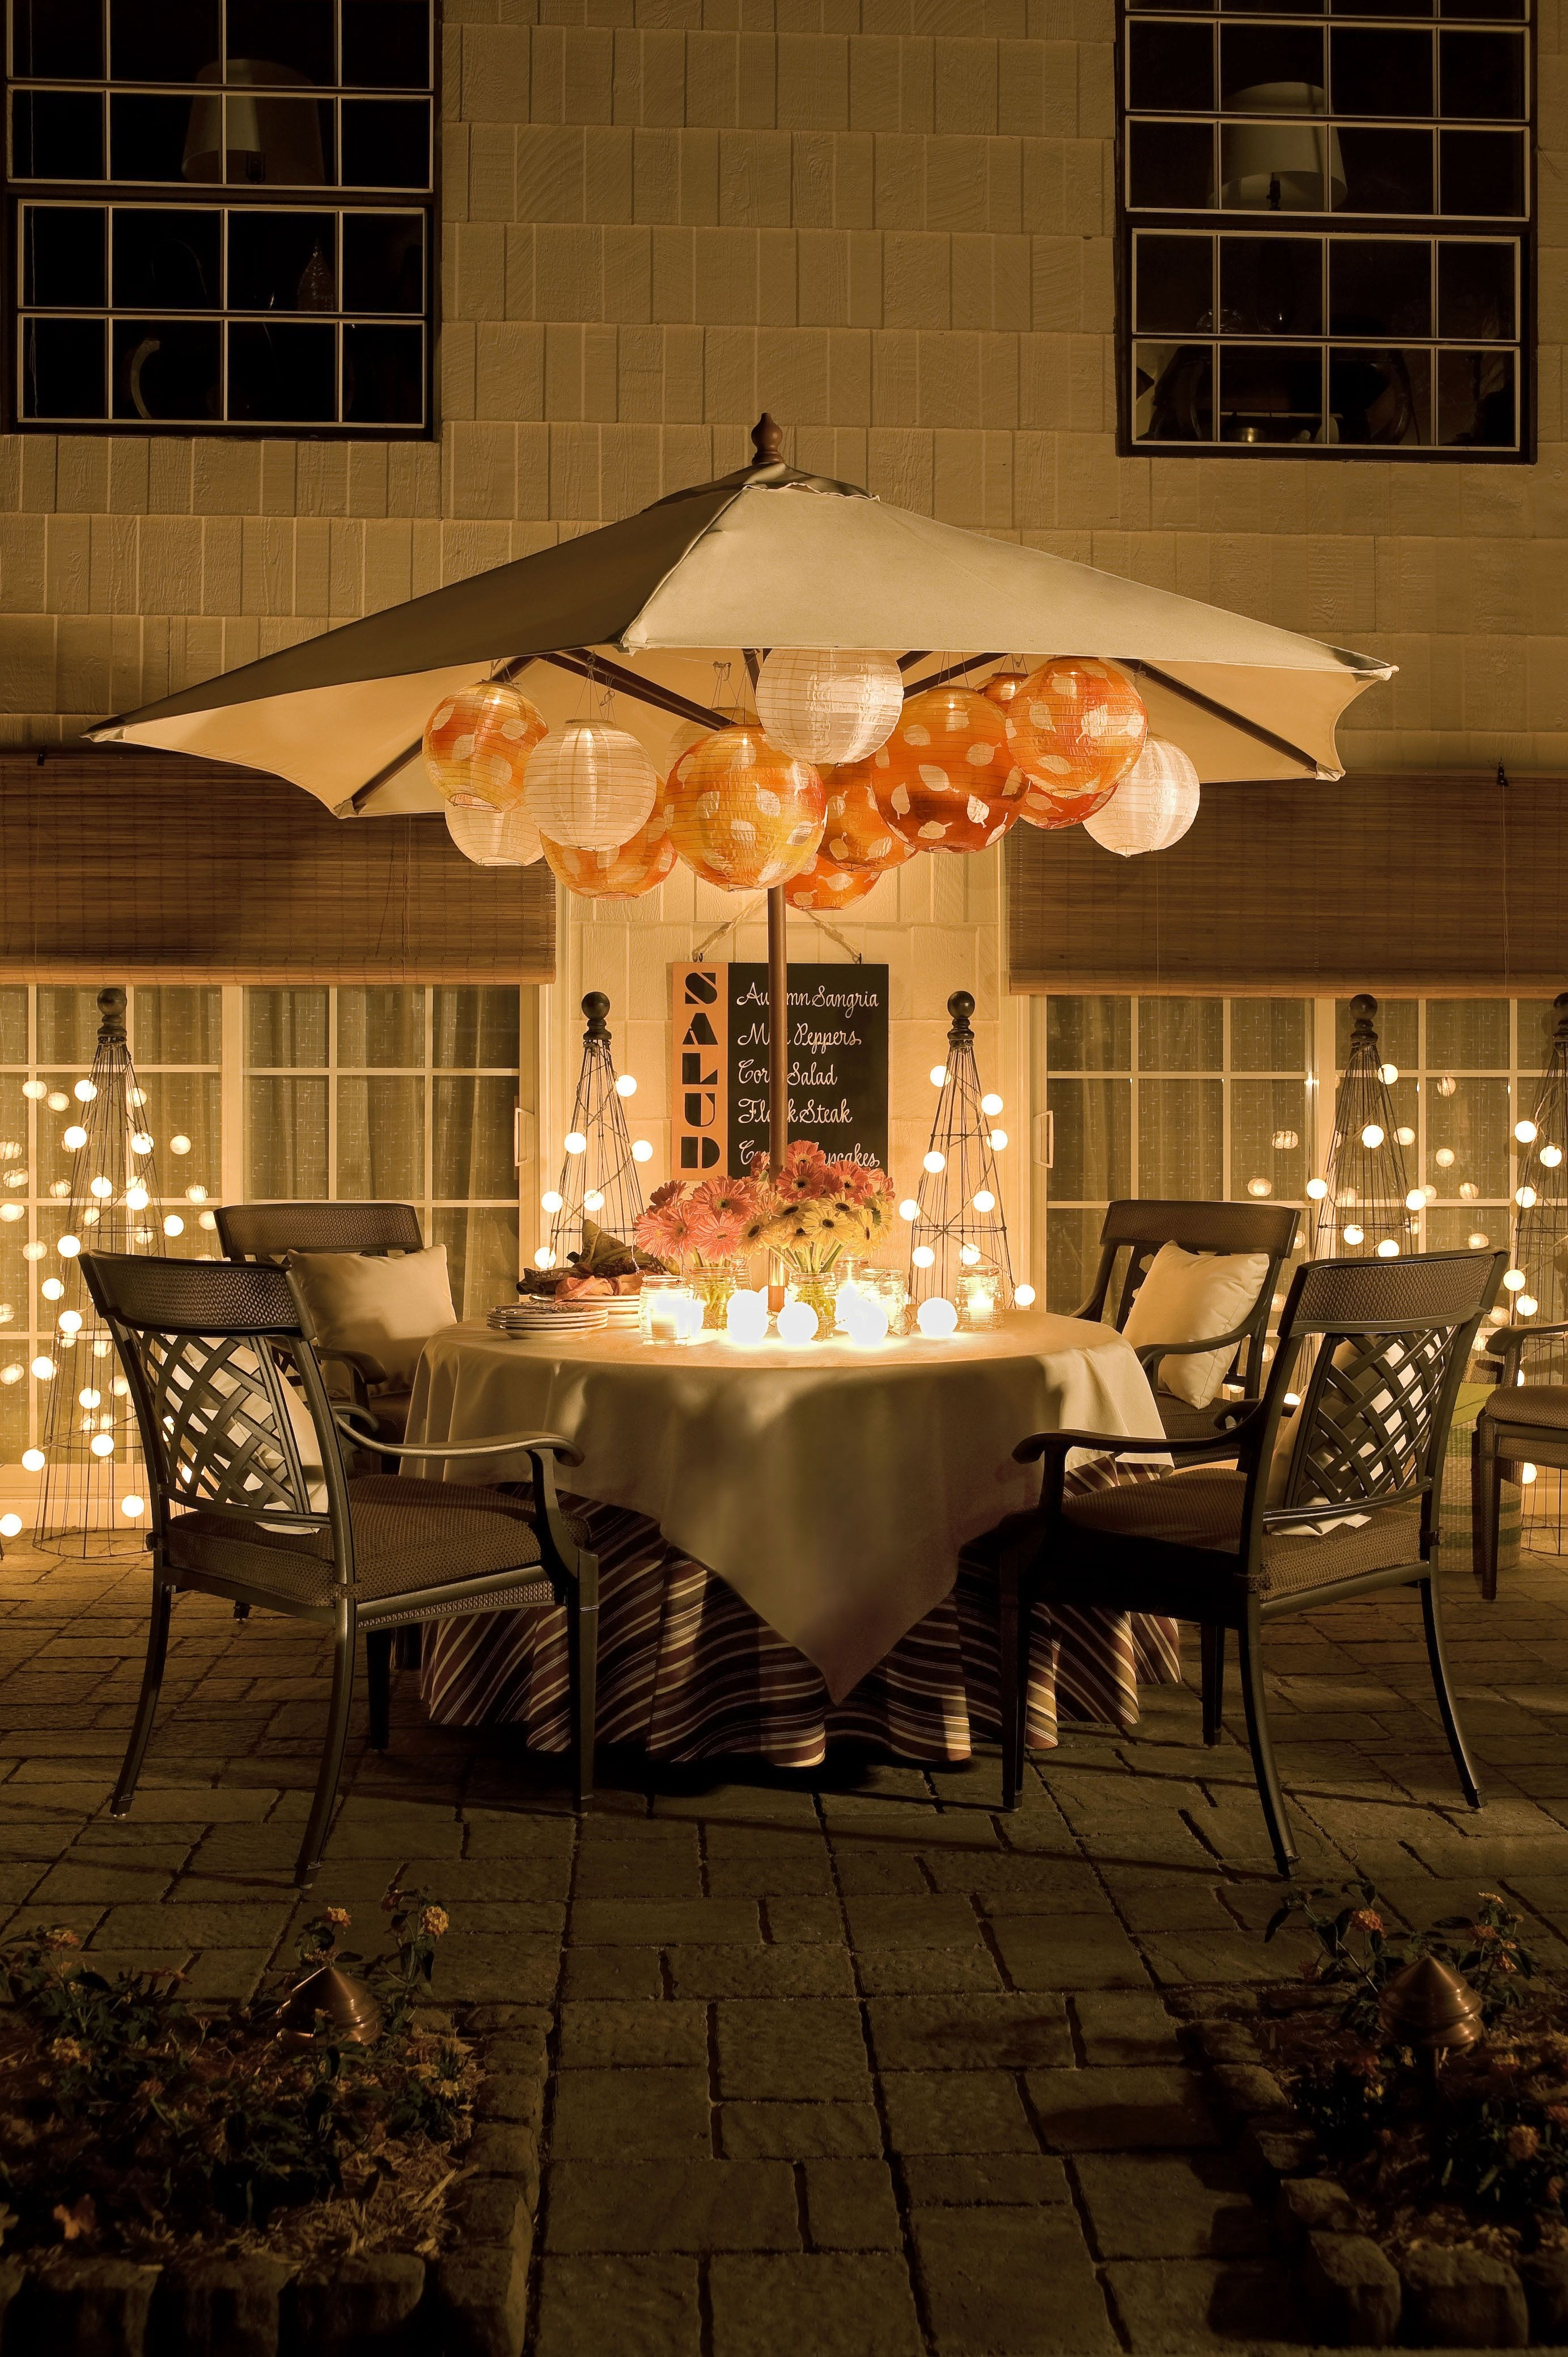 Light Up The Night! | Savor Summer! | Pinterest | Lights, Paper Throughout Outdoor Paper Lanterns For Patio (View 4 of 20)